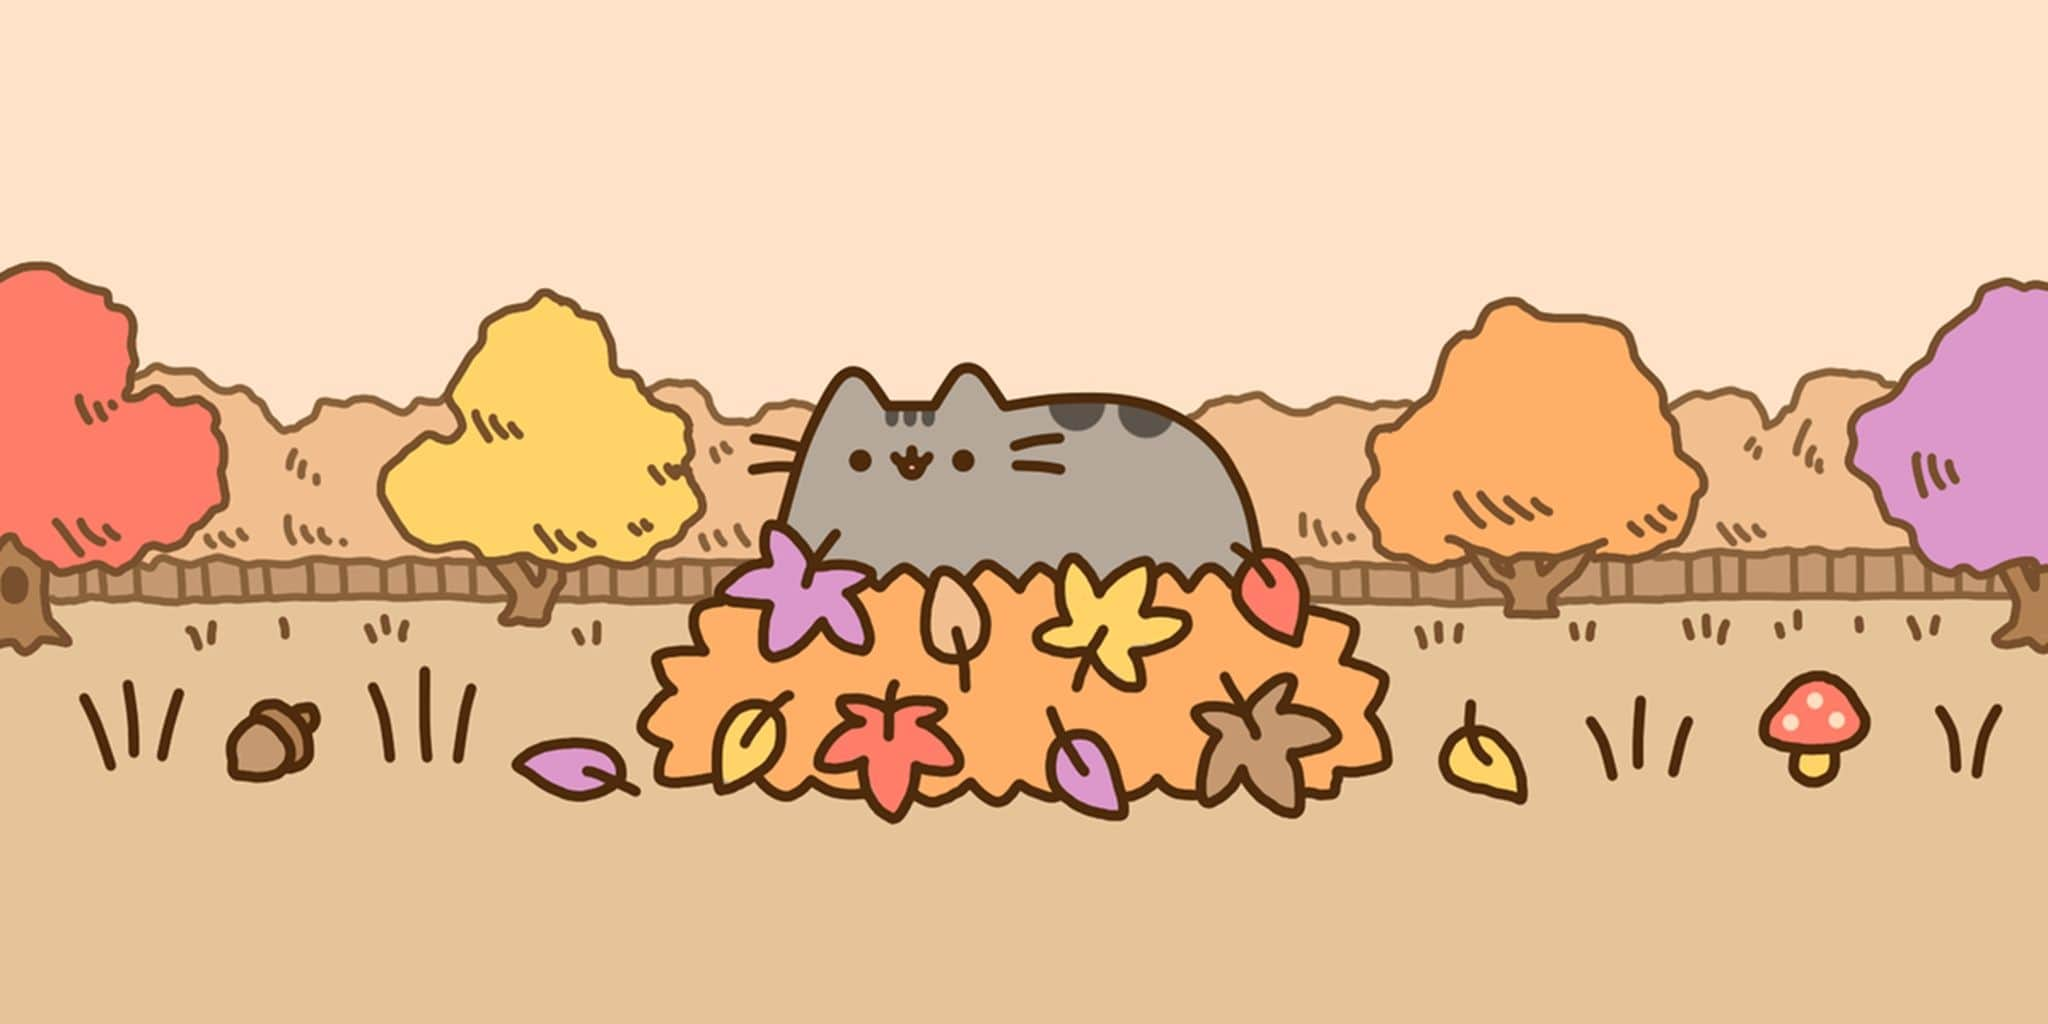 Pusheen Autmn Wallpaper Pc Kolpaper Awesome Free Hd Wallpapers